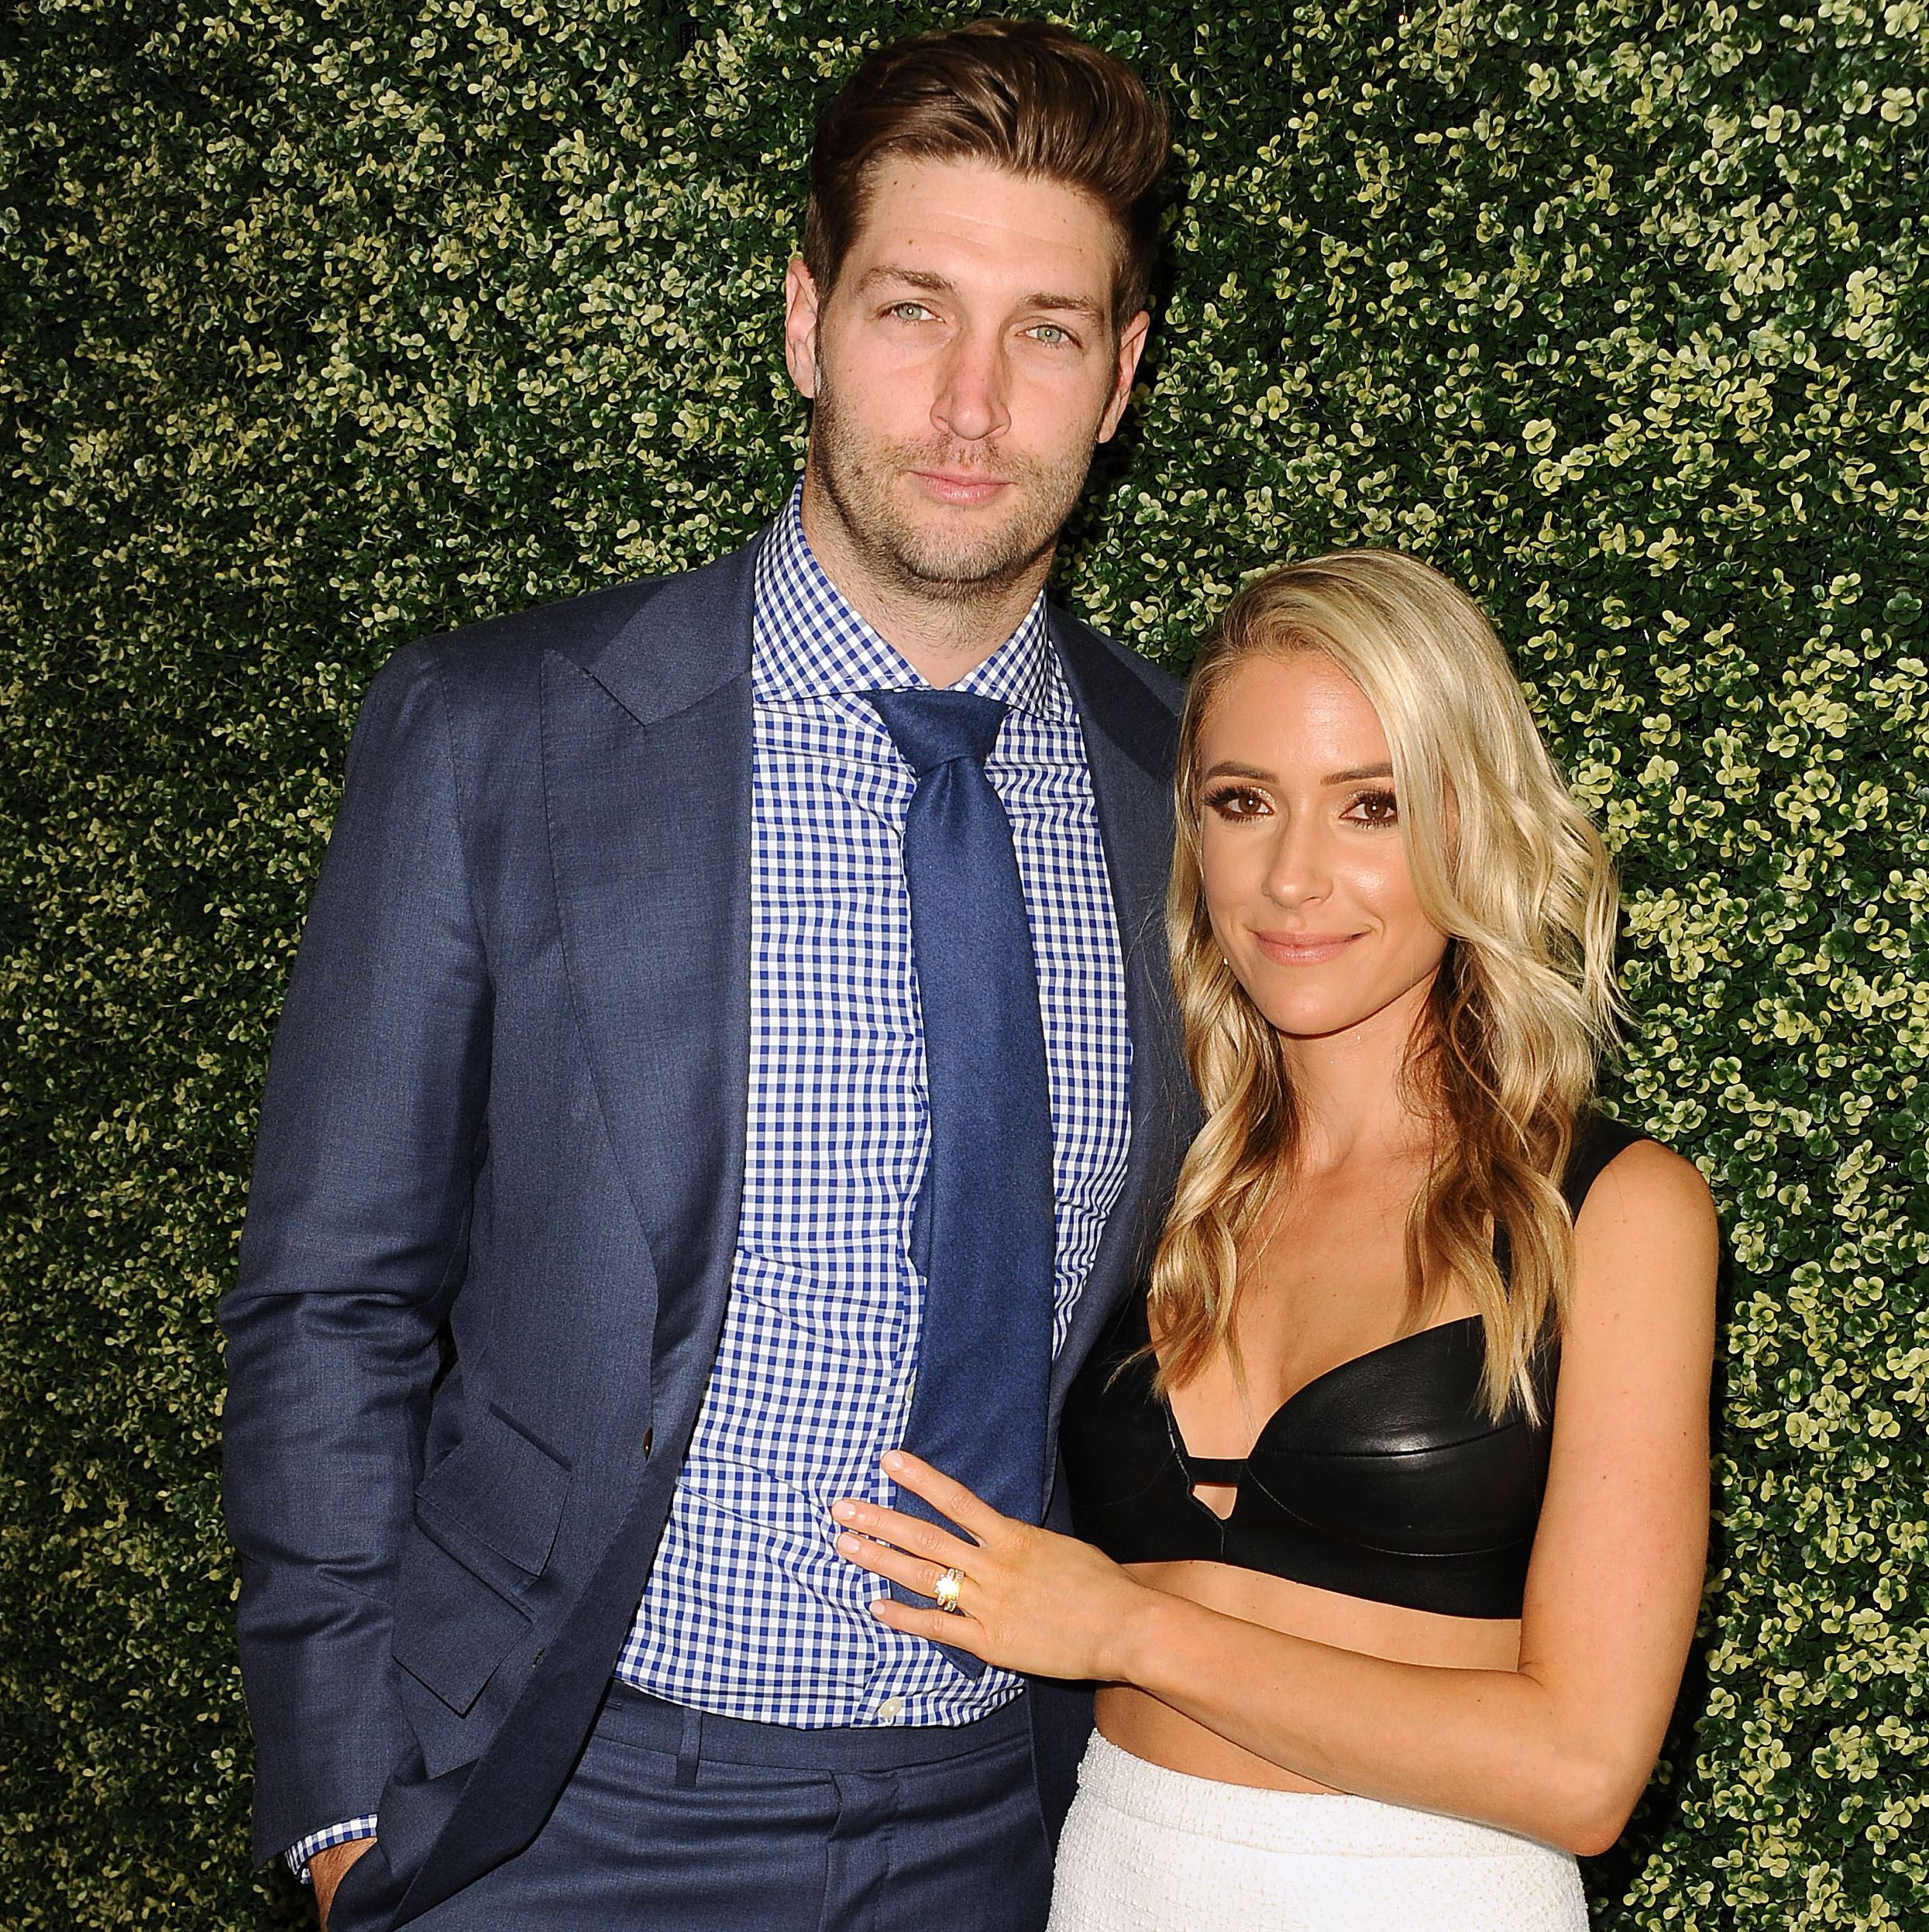 Every Question You Have About Kristin Cavallari's Husband and Kids, Answered